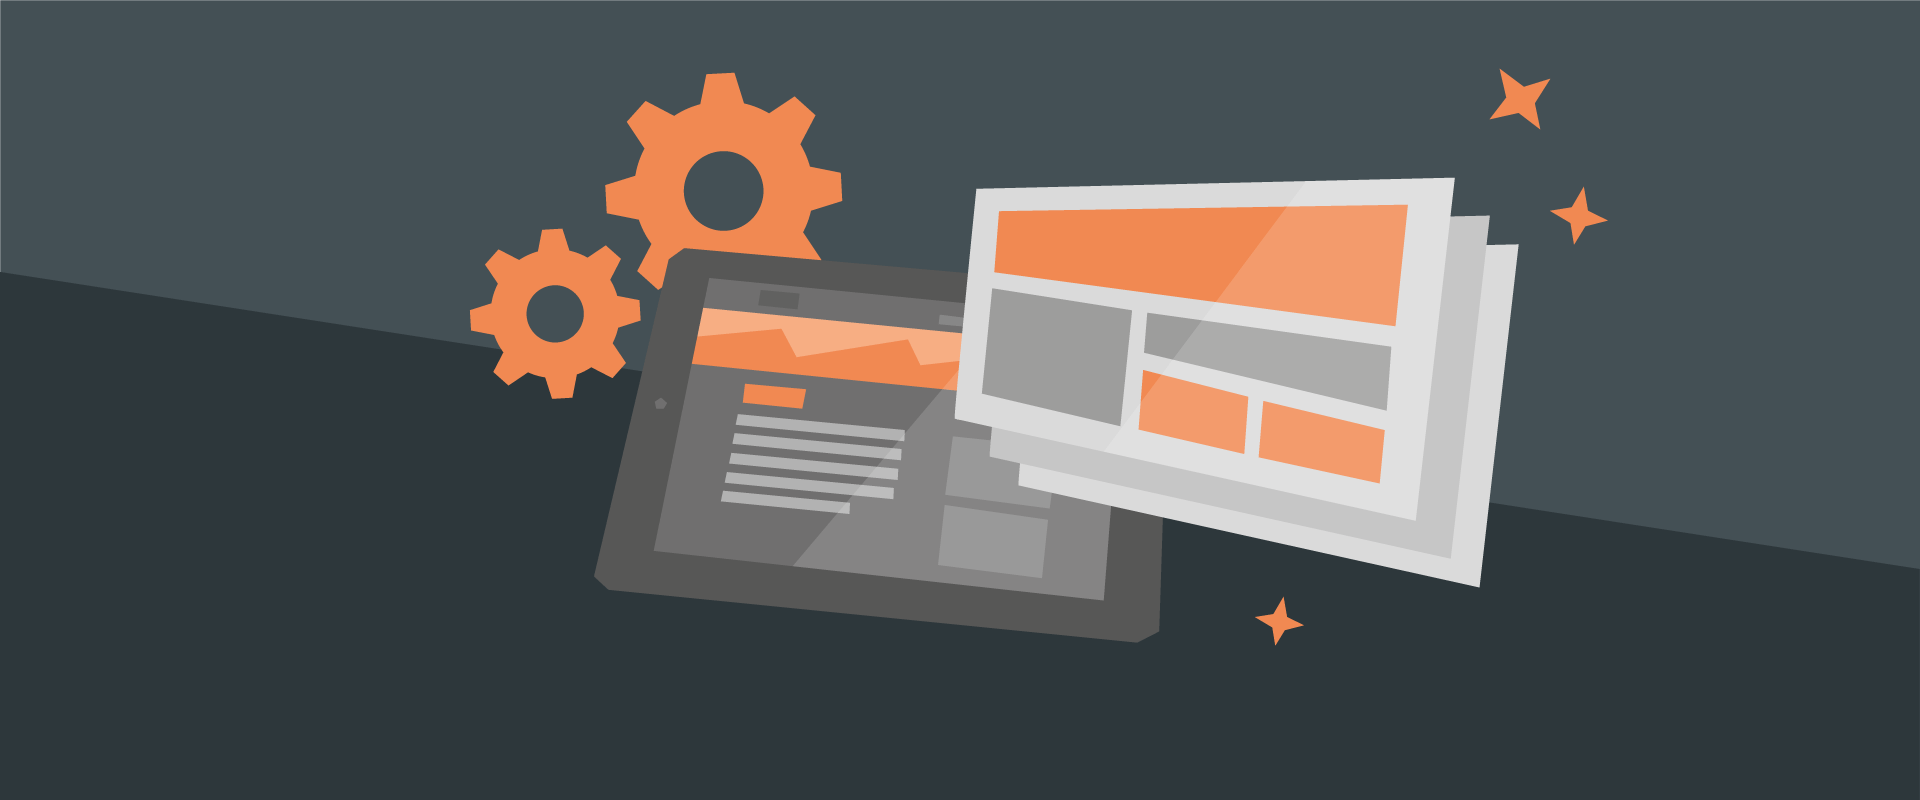 How to Quickly Build a Headless Website Template